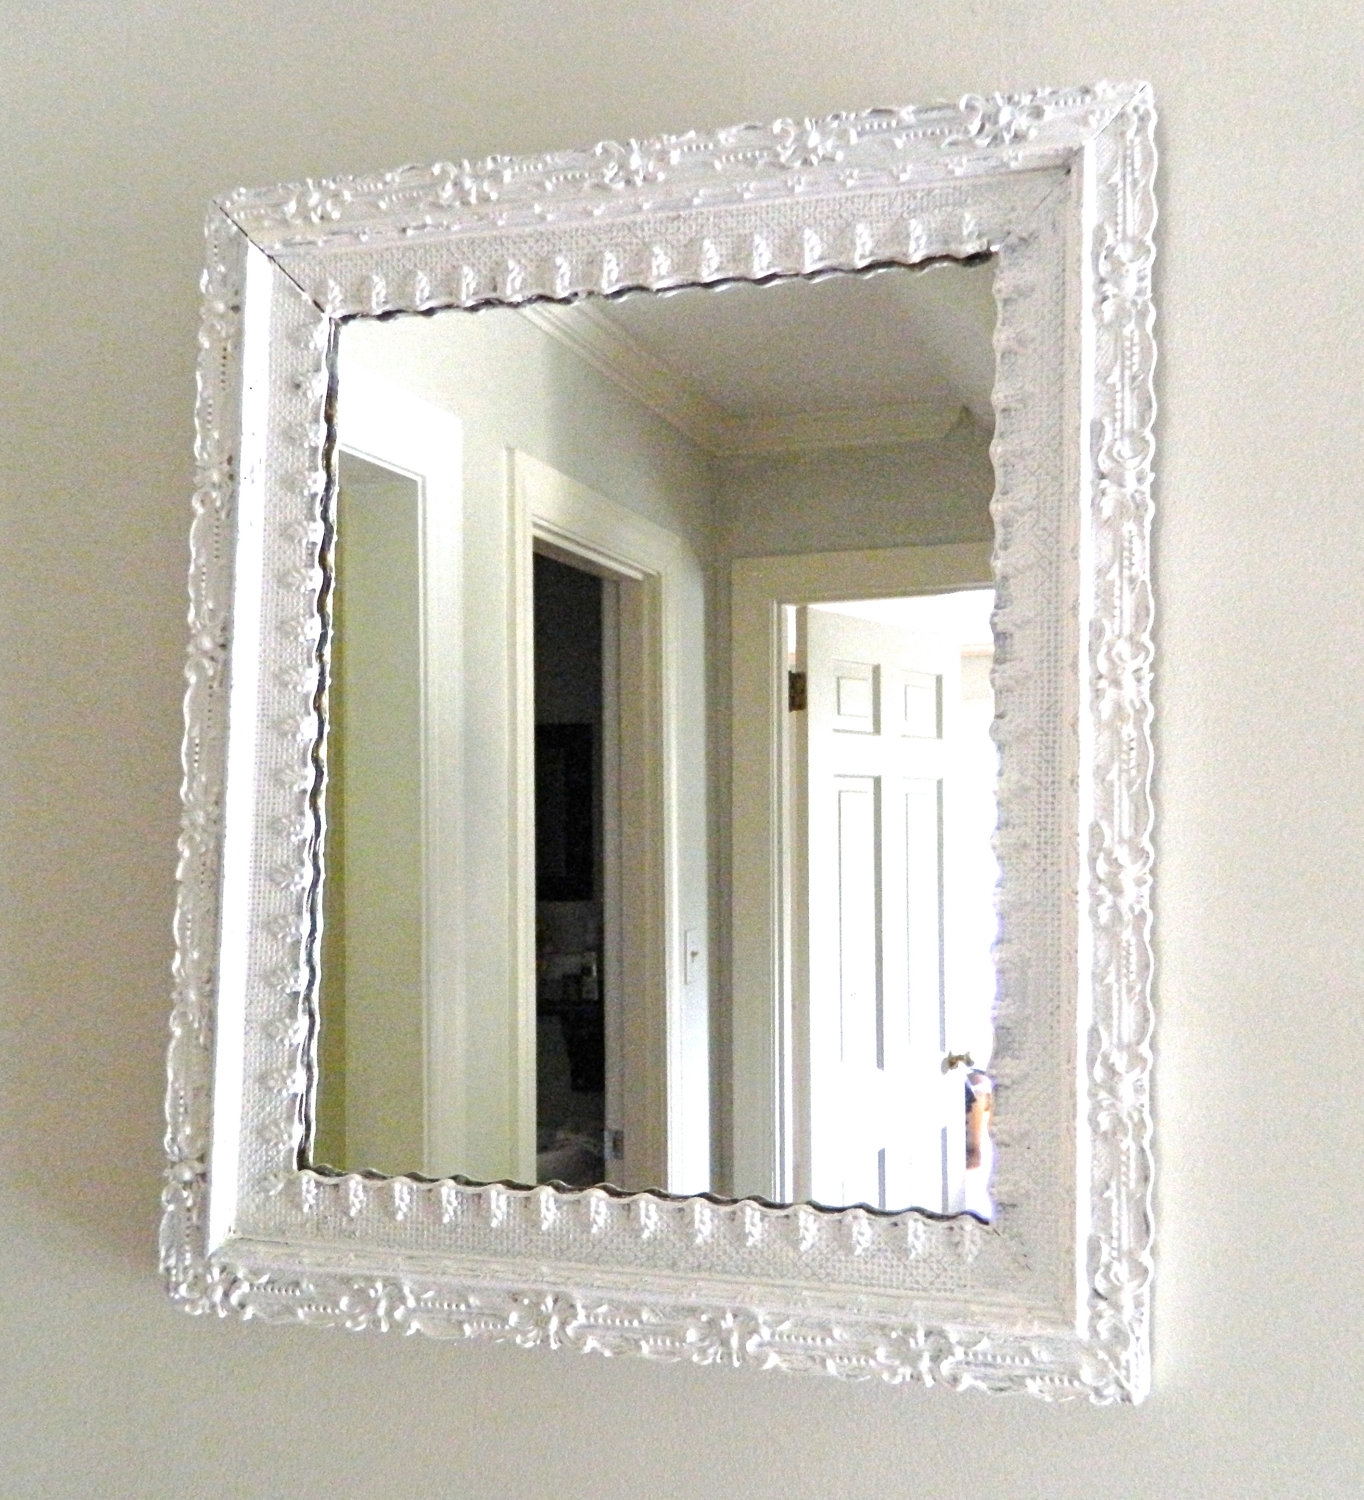 Vintage White Mirror Shab Chic Ornate Wood Frame Intended For White Antique Mirror (Image 13 of 15)